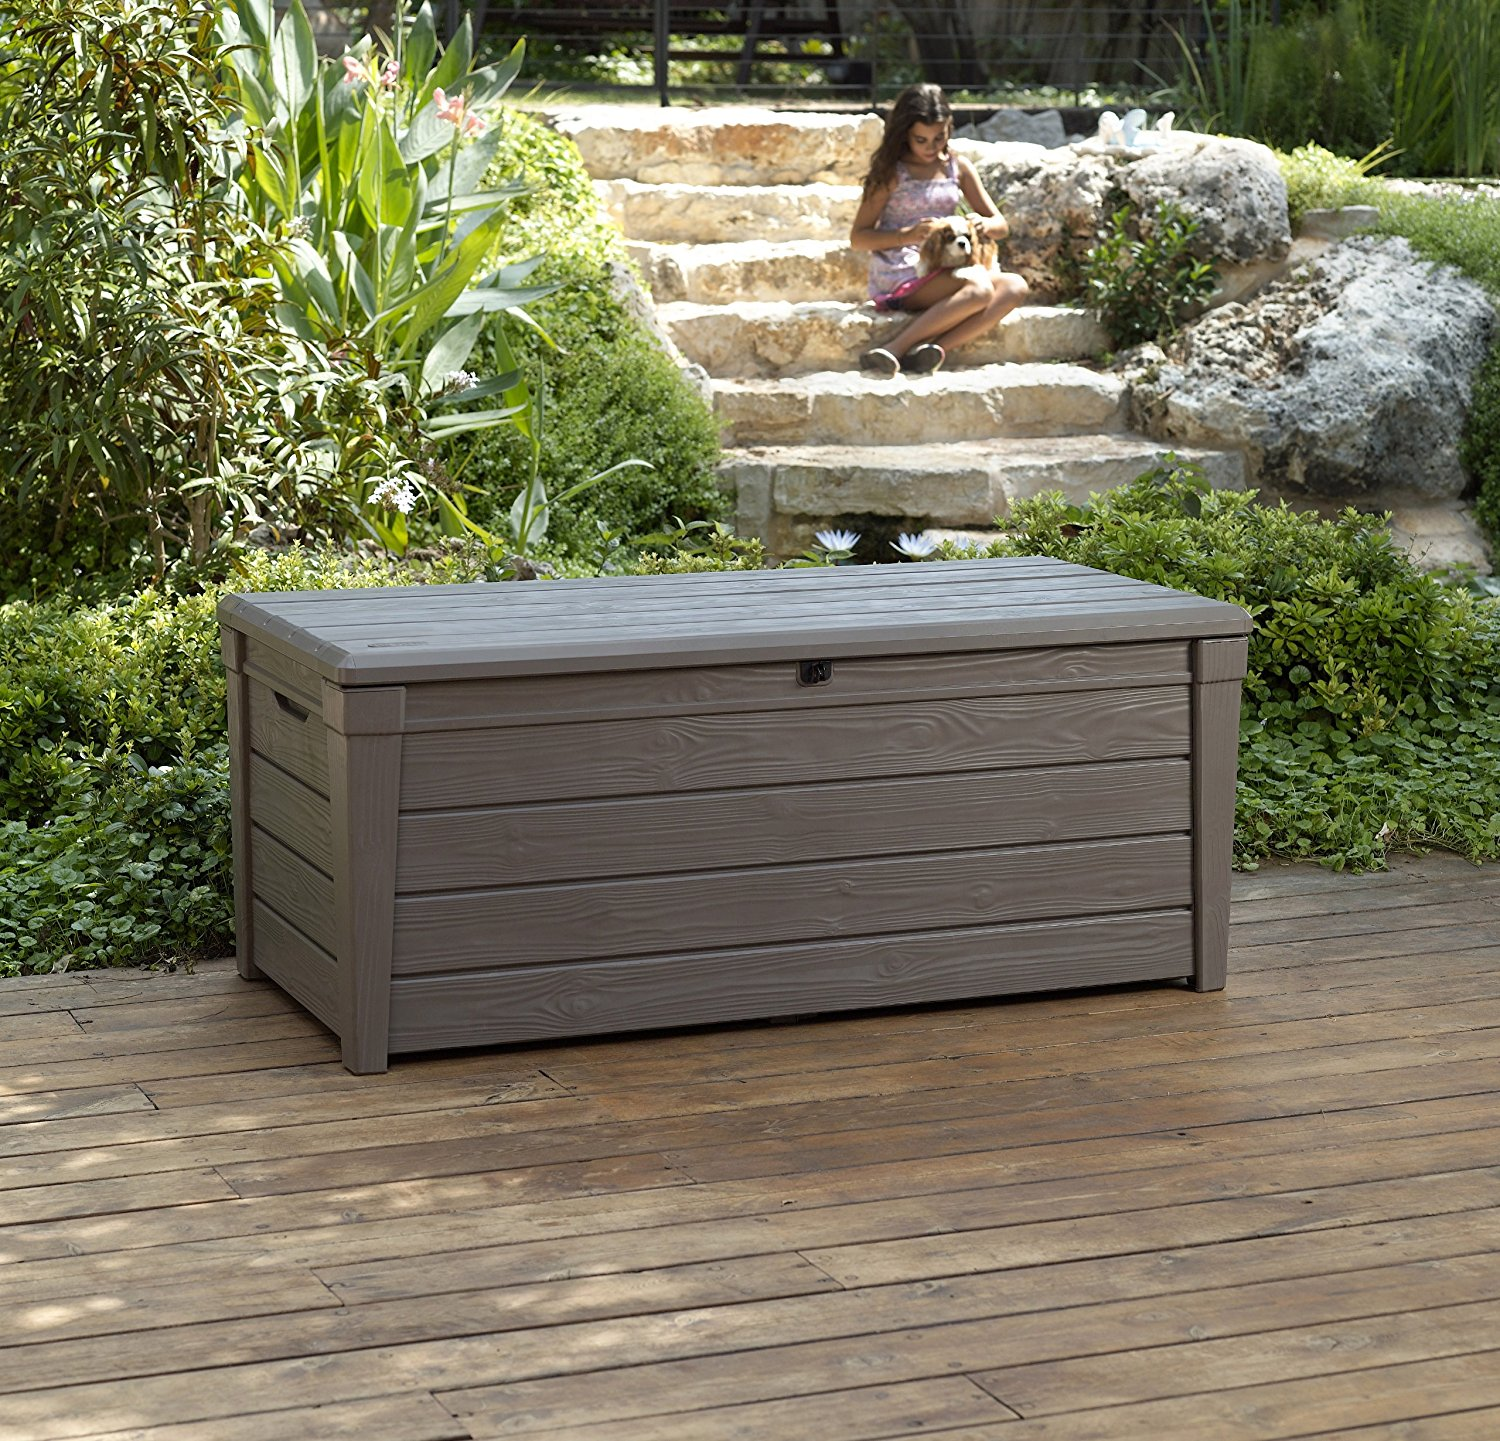 Extra Large Deck Box 150 Gallon | Rubbermaid Storage Bench | Suncast Small Deck Box